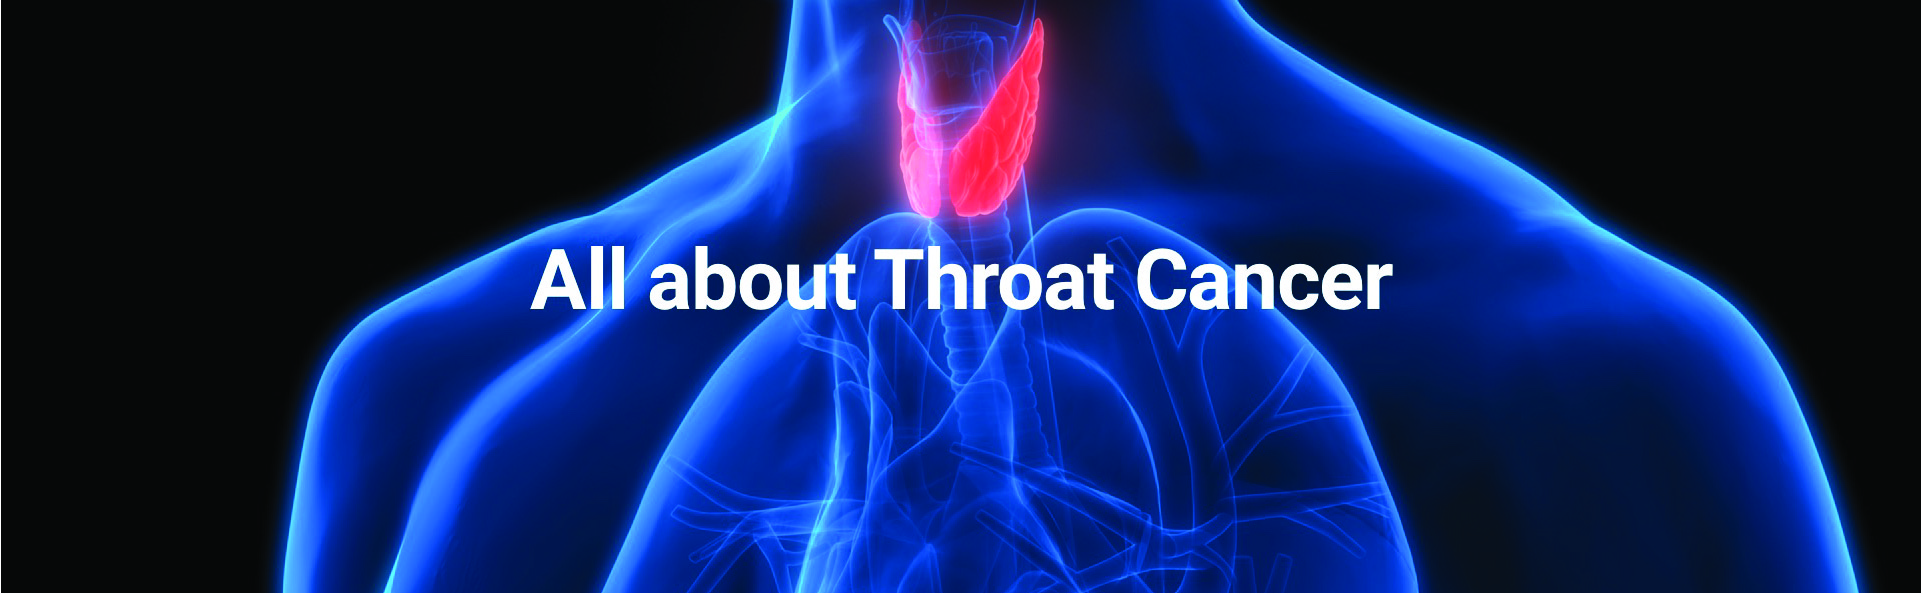 All About Throat Cancer